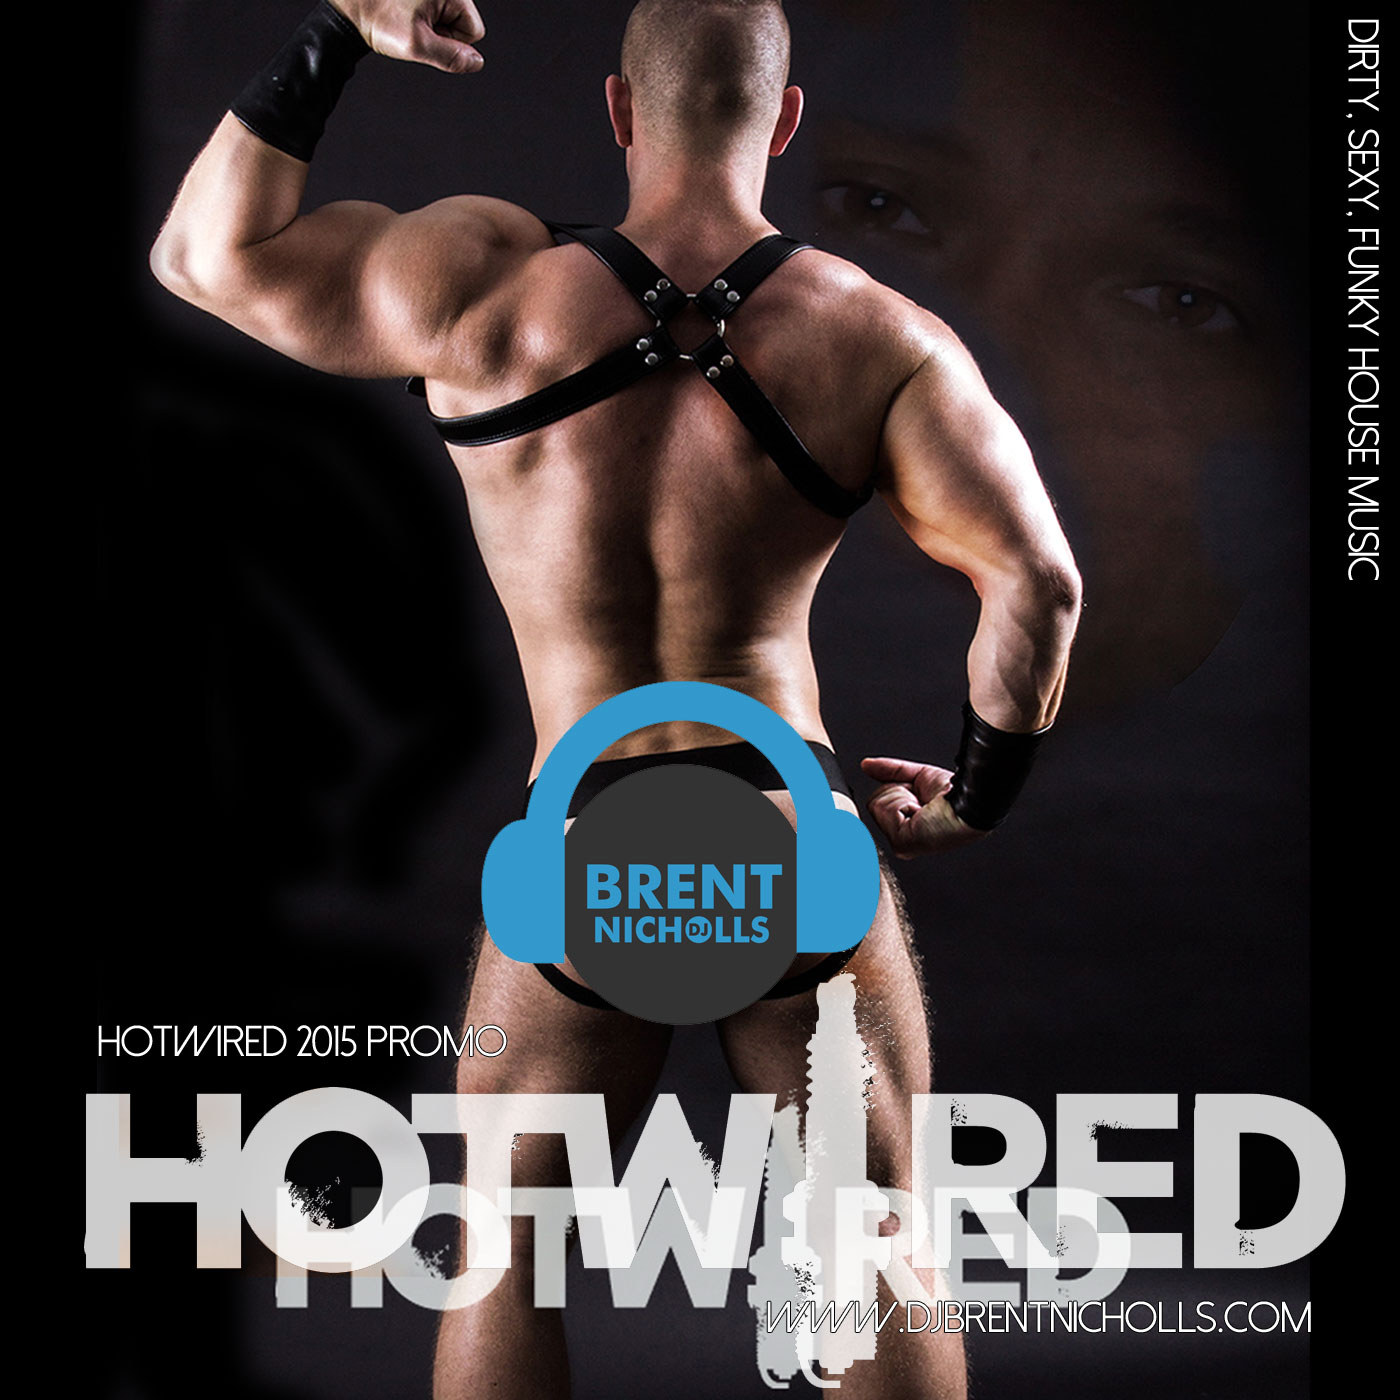 PODCAST: HOTWIRED 2015 PROMO